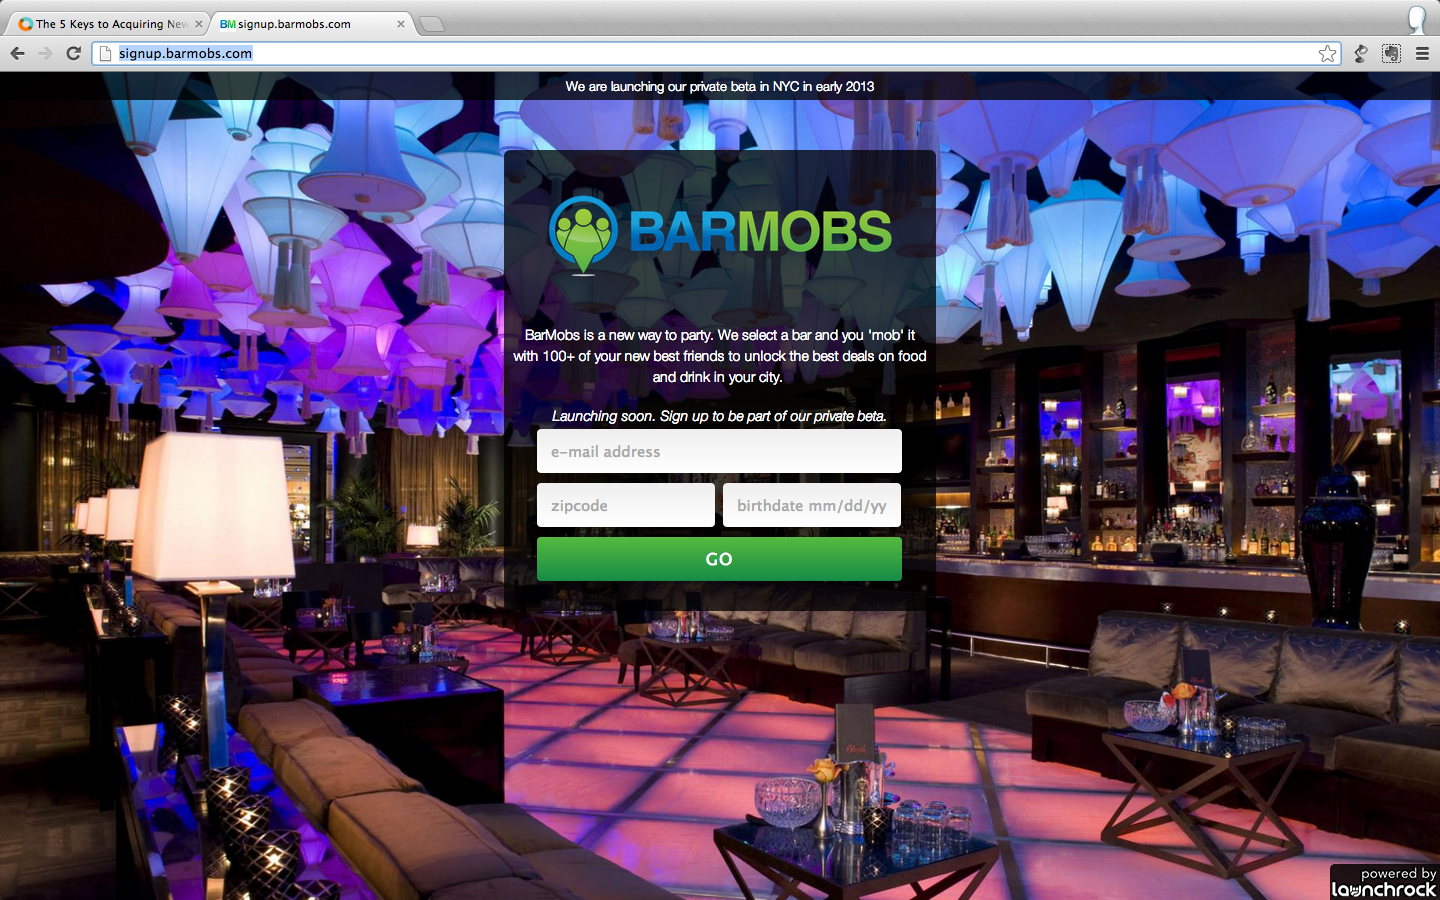 BarMobs - image 1 - student project